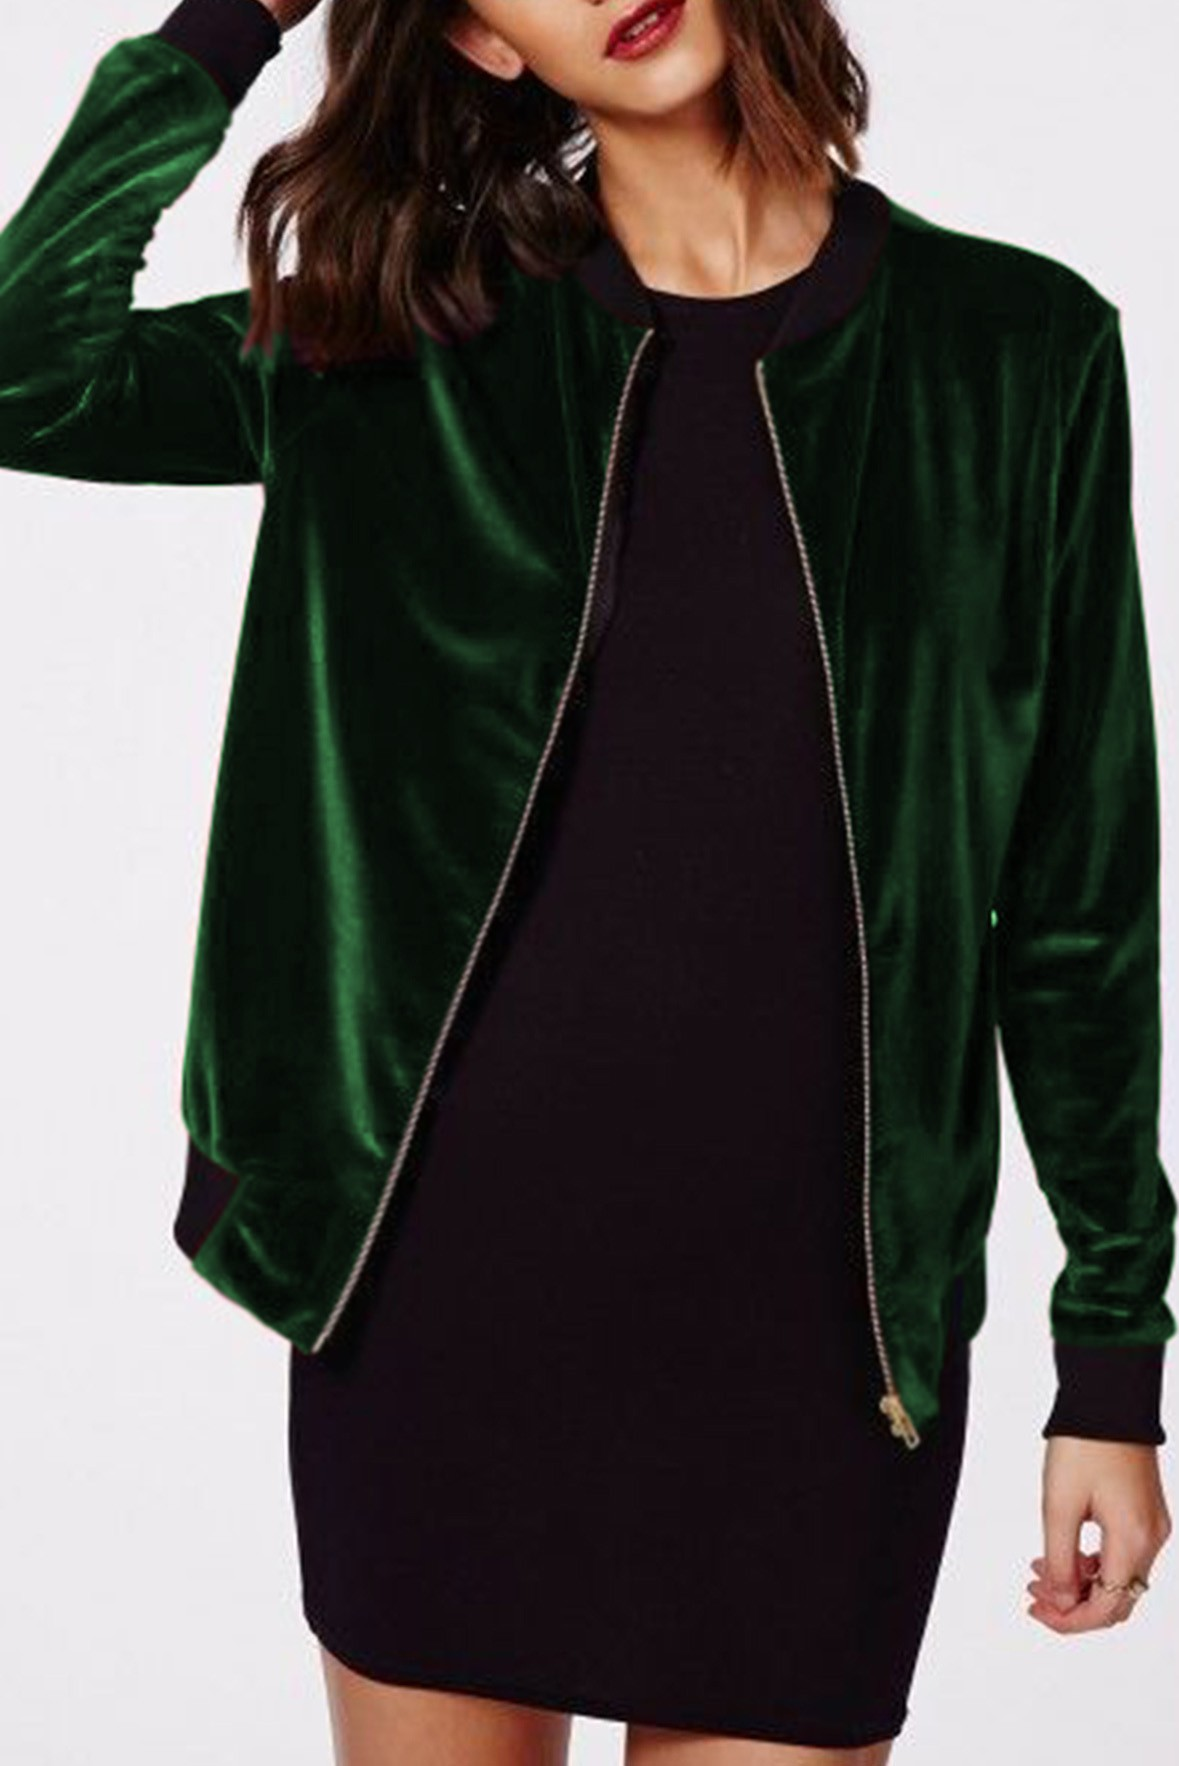 Life of the Party Jacket Green